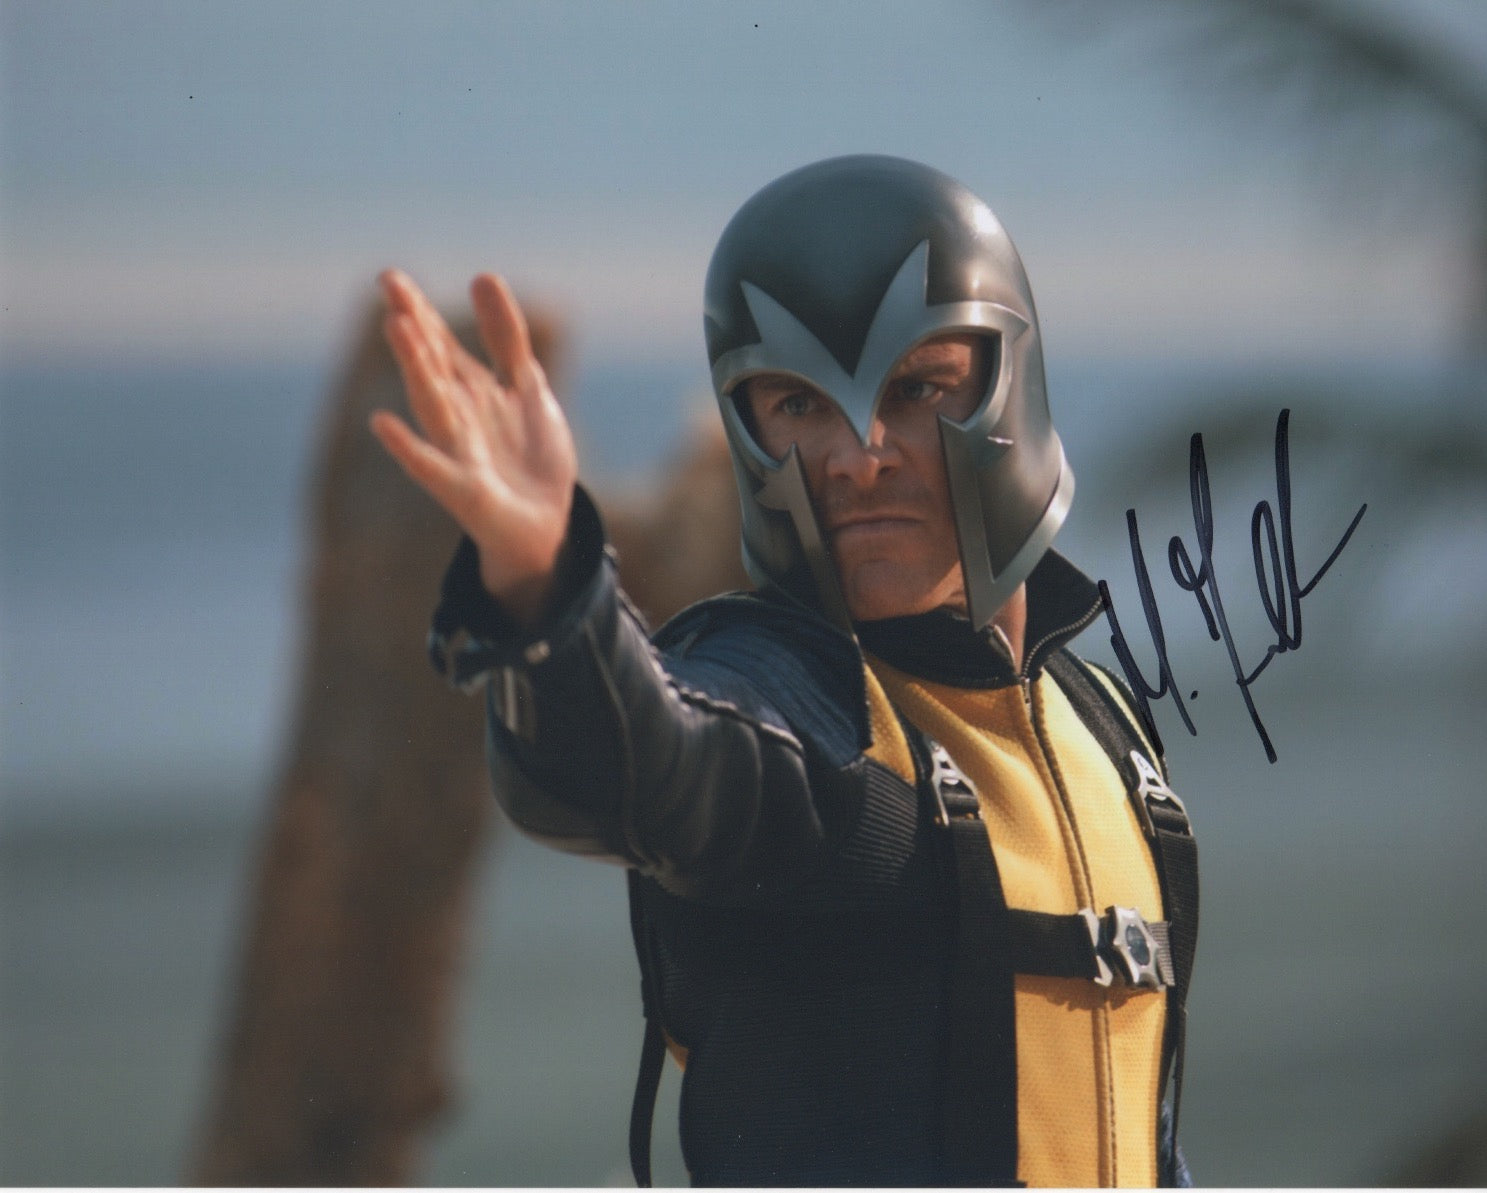 Michael Fassbender X-Men Signed Autograph 8x10 Photo #2